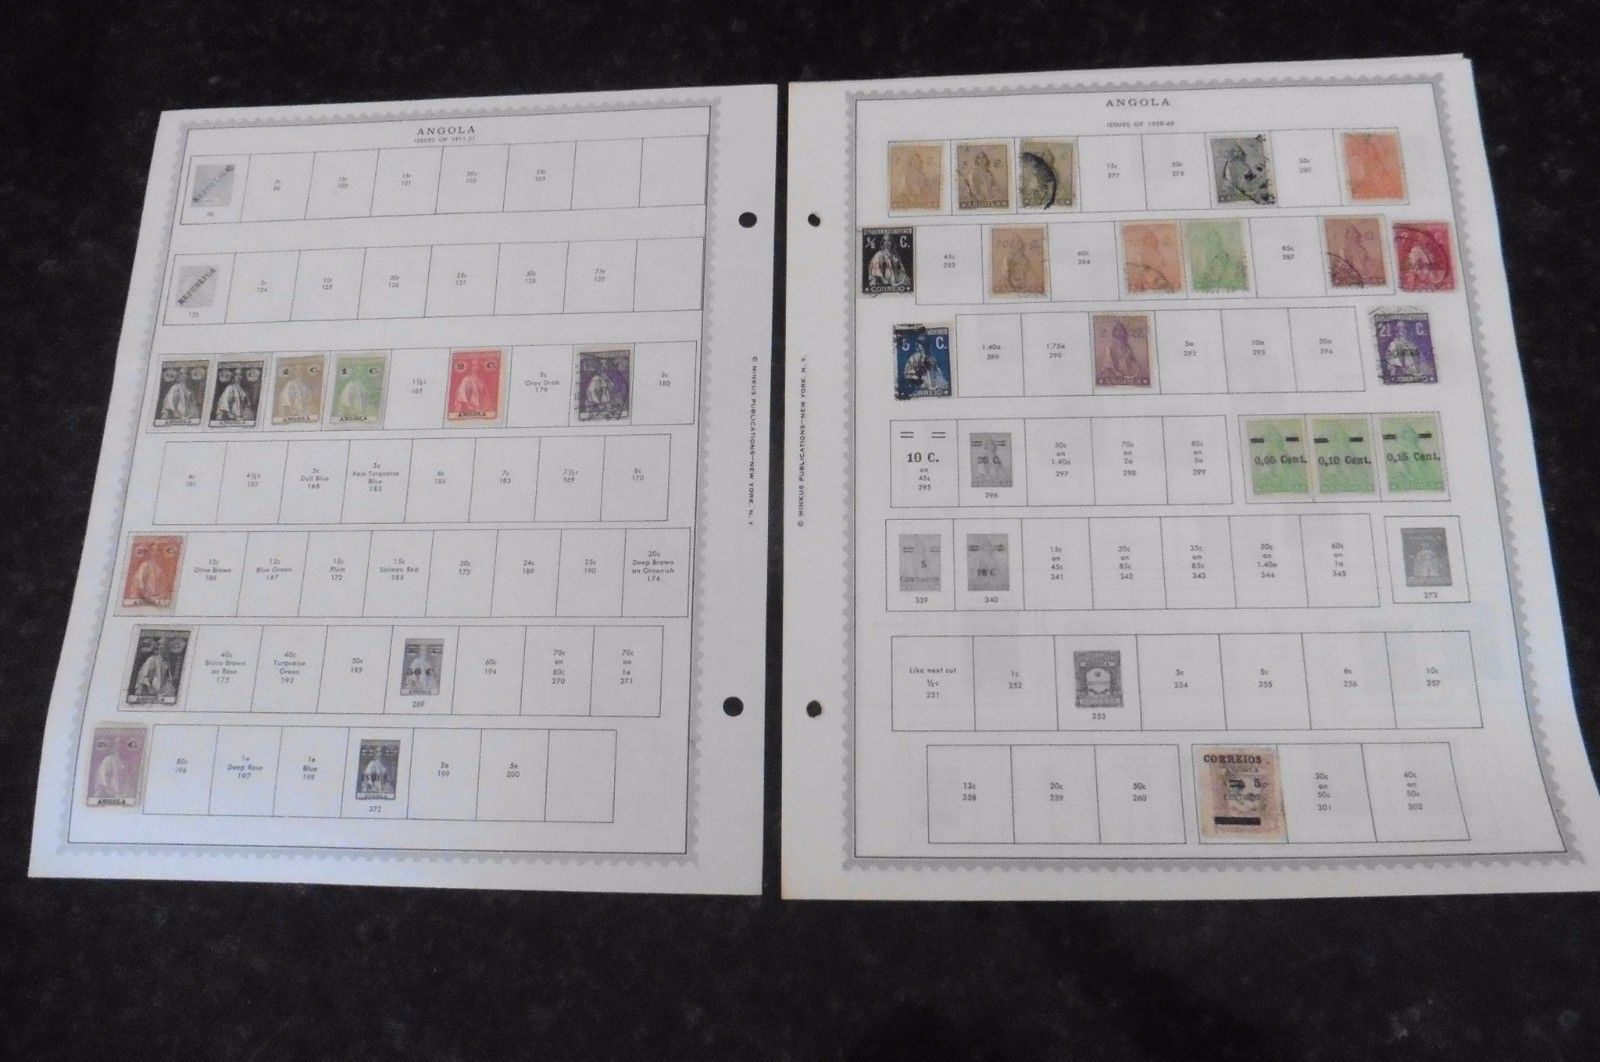 A55 Lot of Angola Stamps on 8 Minkus pages 1870-1970